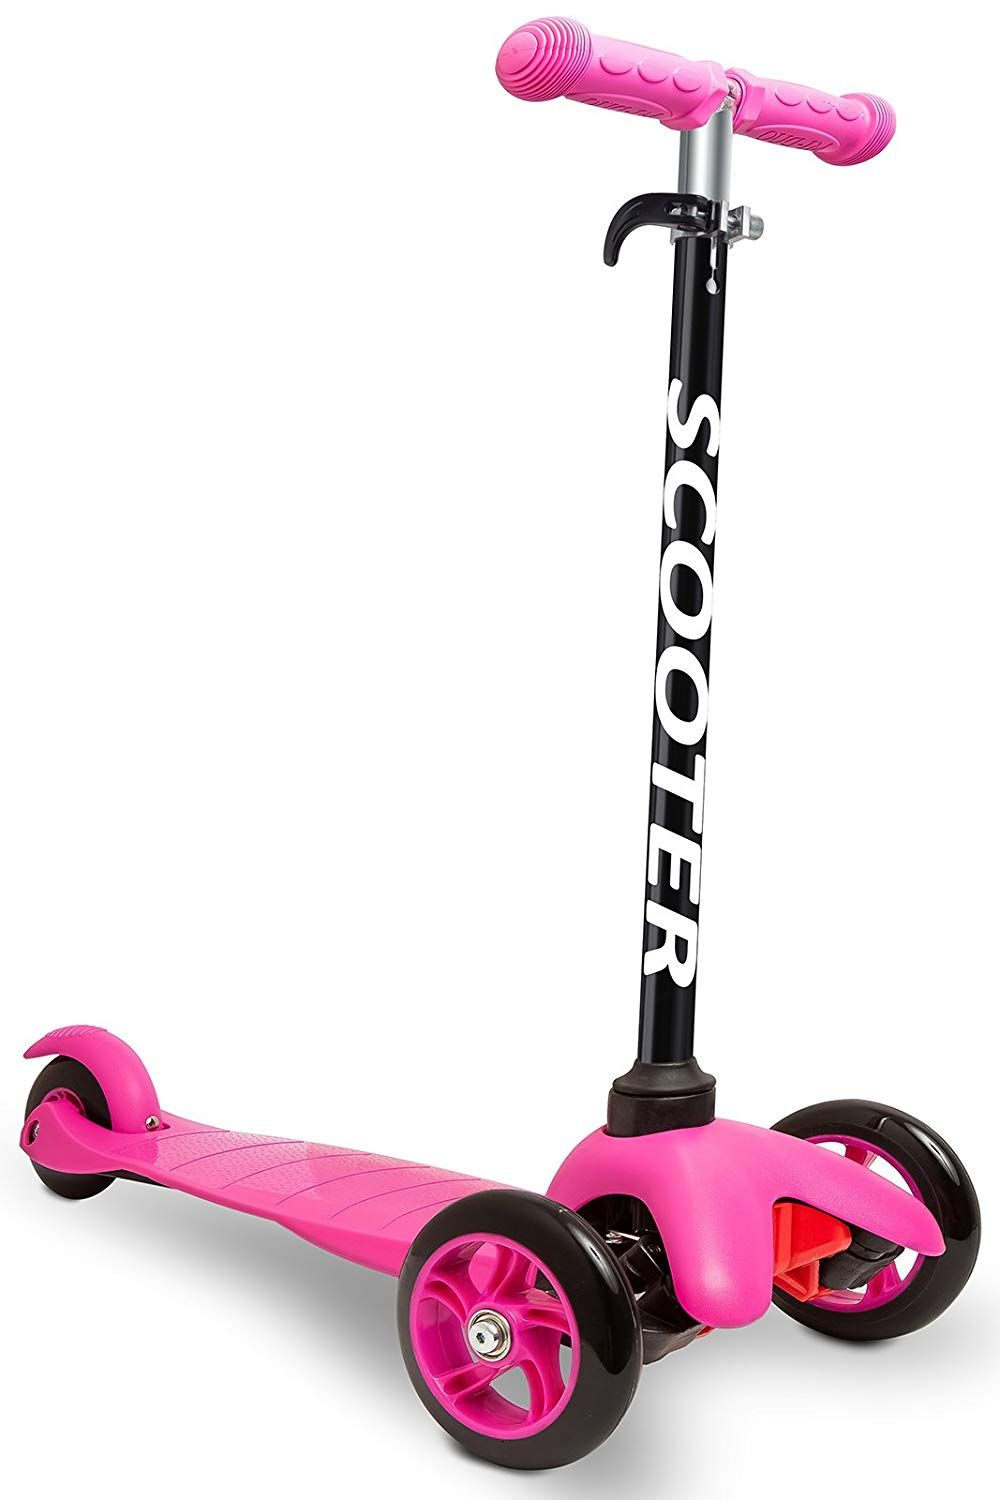 Den Haven Scooter For Kids Deluxe Aluminum 3 Wheel Glider With